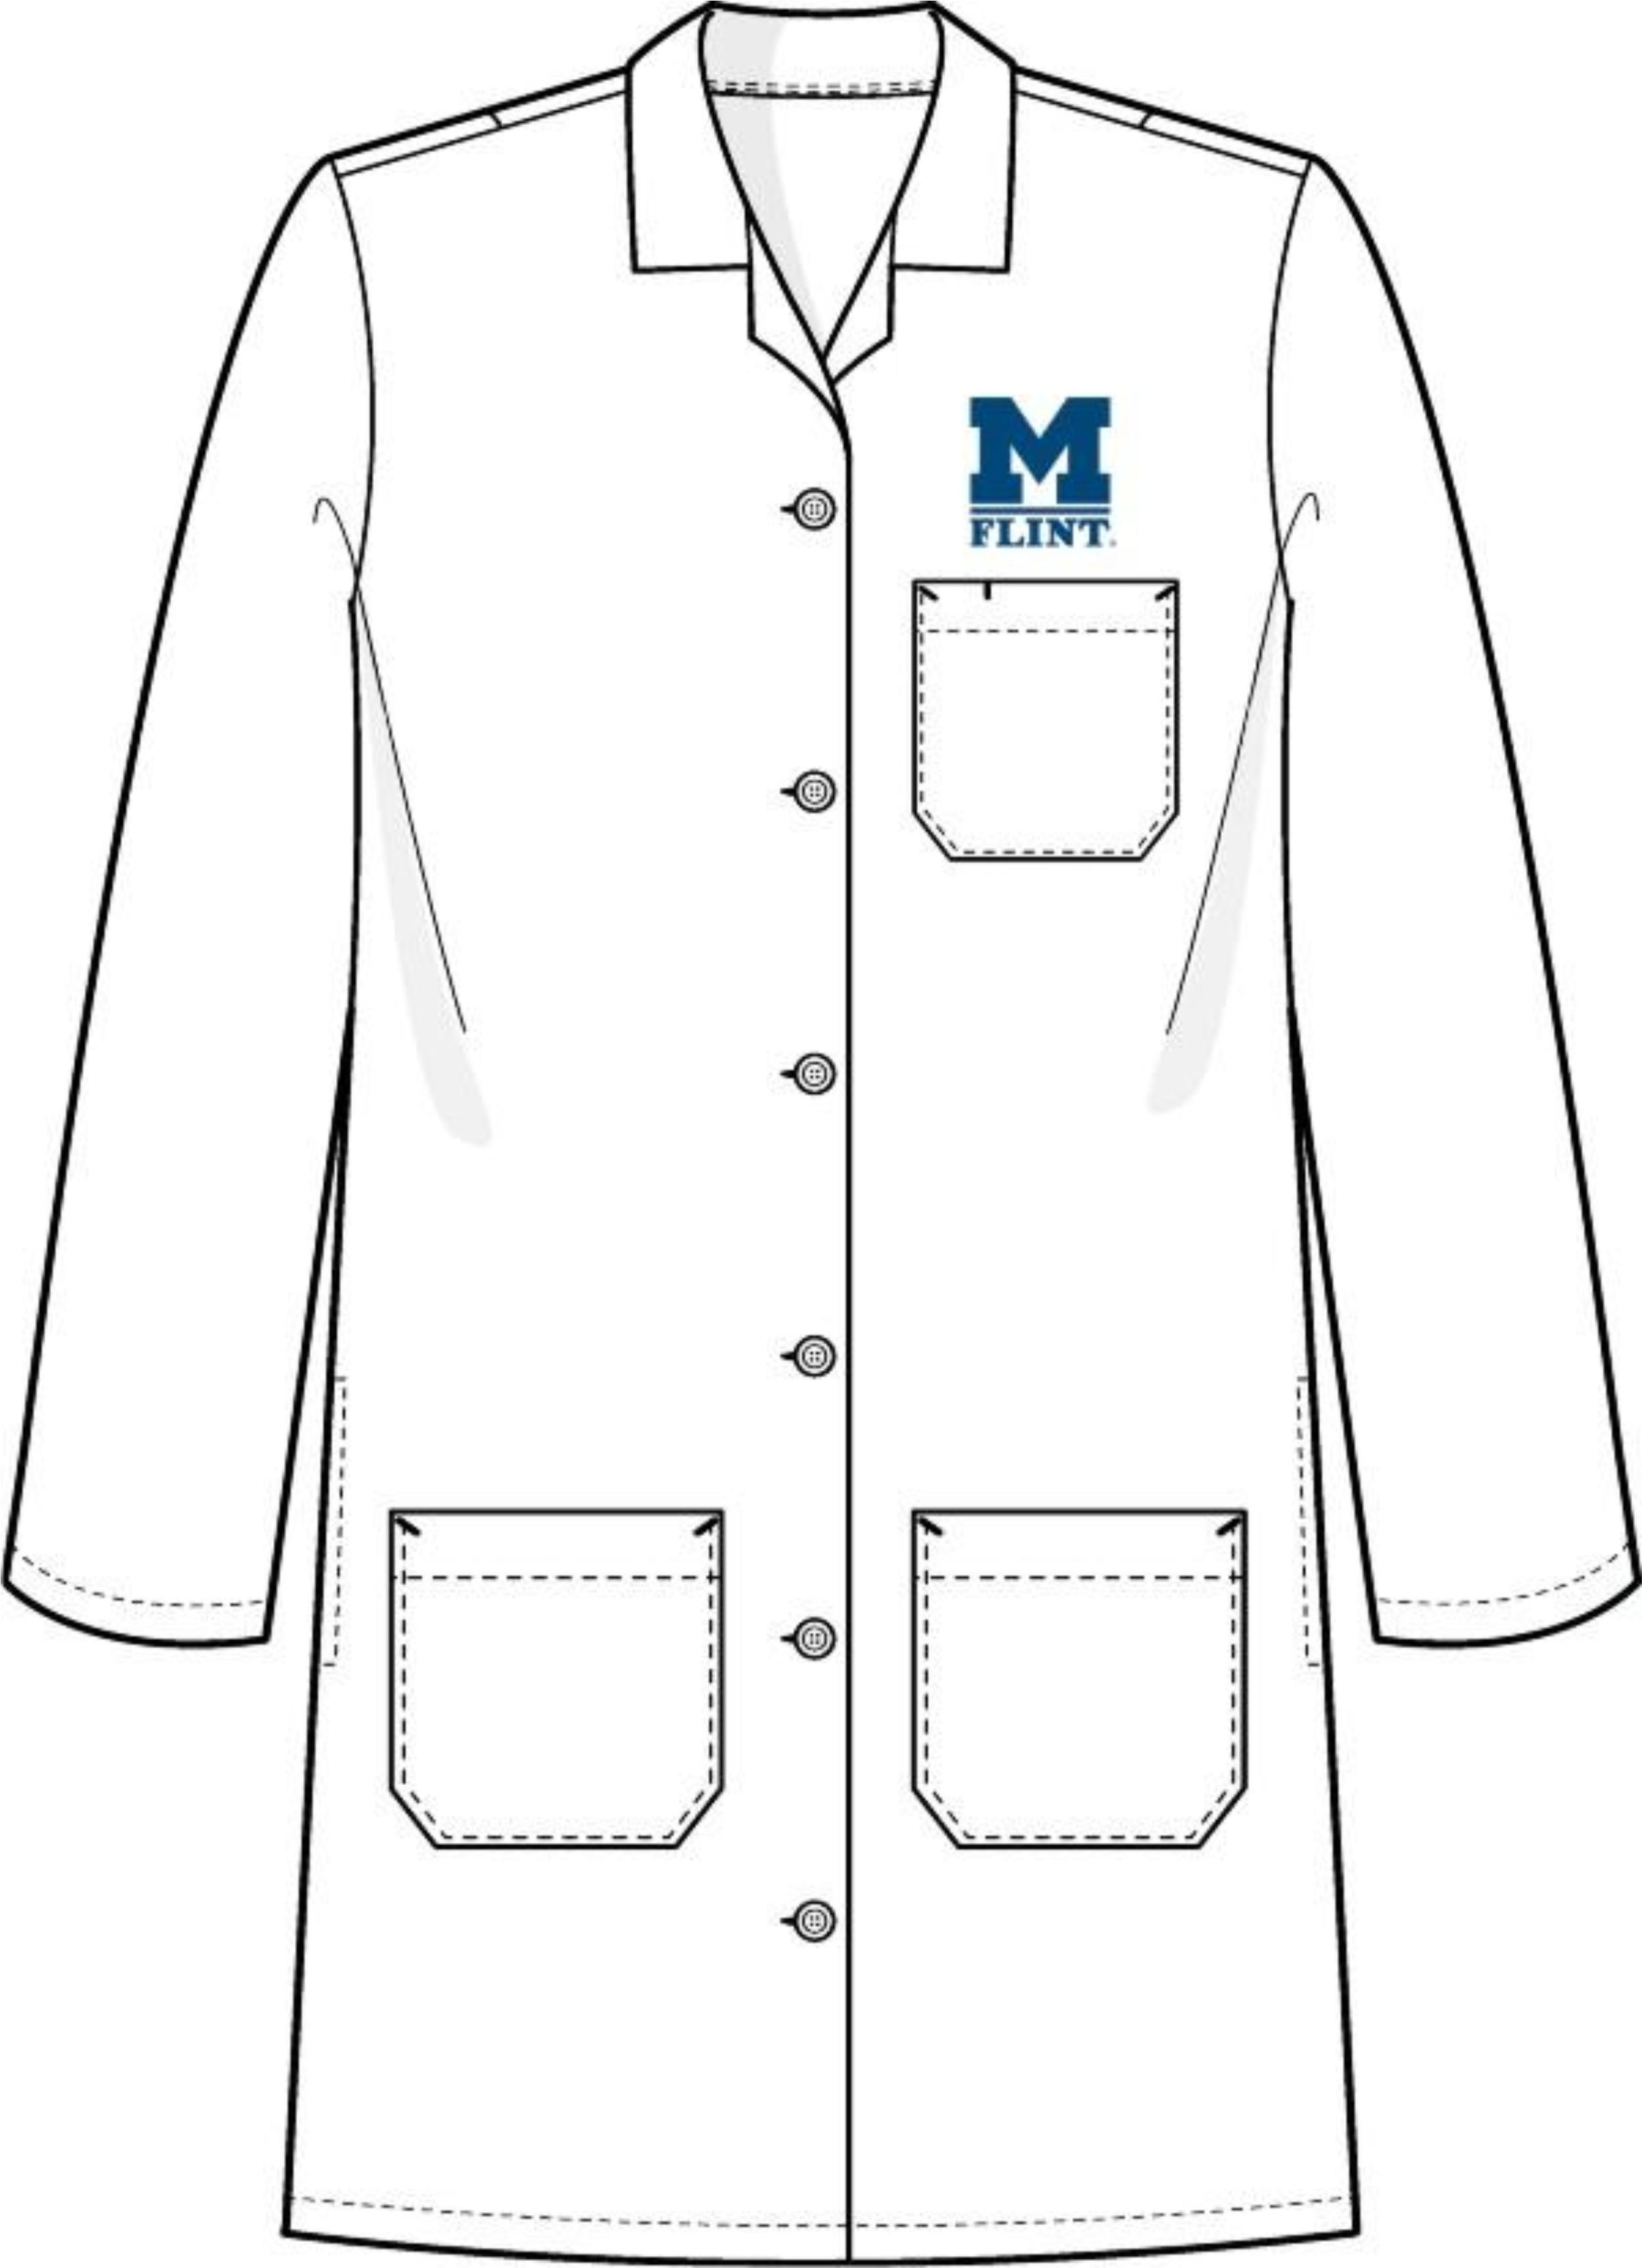 Gown clipart lab And coat Vector Lab coat